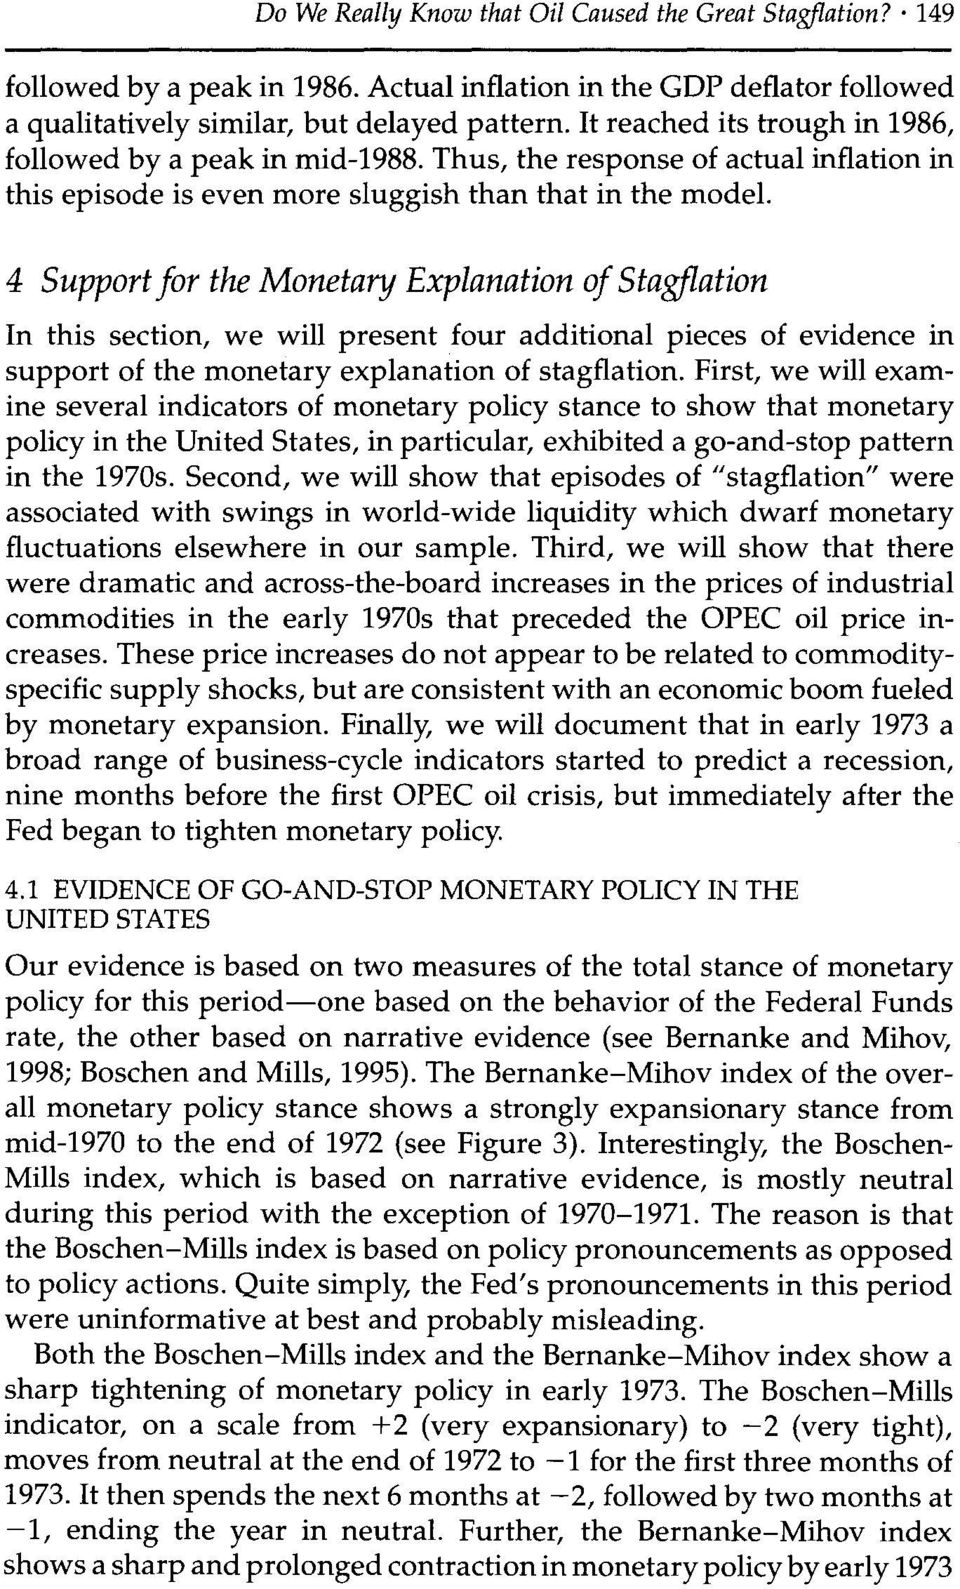 4 Supportfor the Monetary Explanation of Stagflation In this section, we will present four additional pieces of evidence in support of the monetary explanation of stagflation.